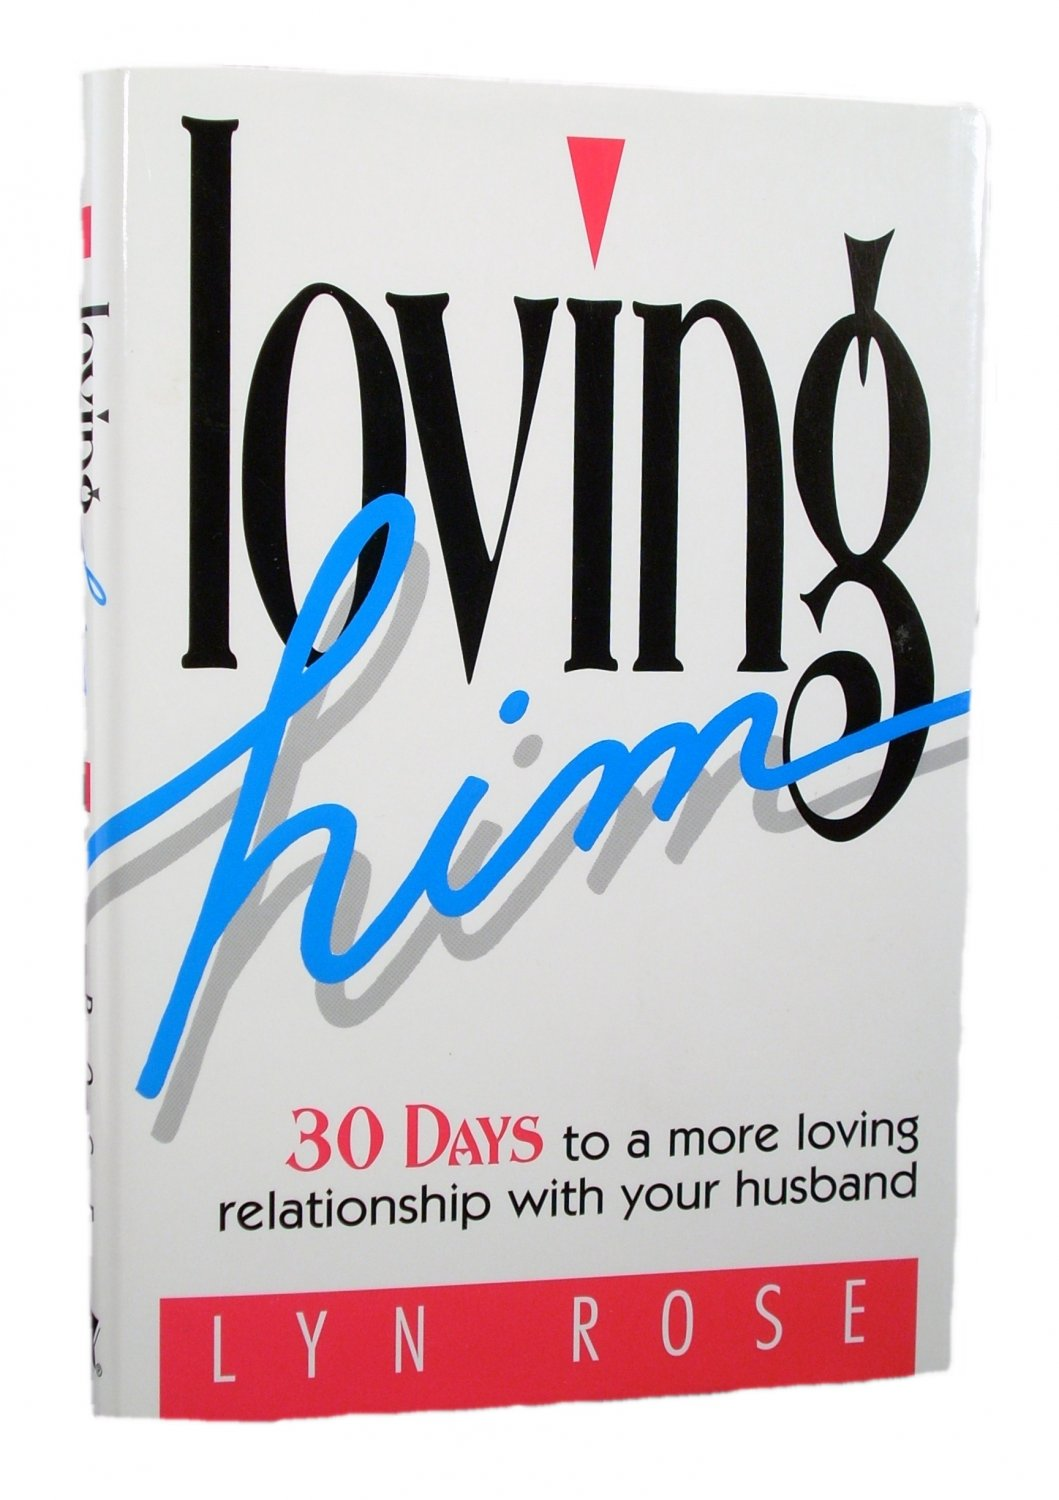 Loving Him: 30 Days To A More Loving Relationship With Your Husband by Lyn Rose 1996 Hardcover